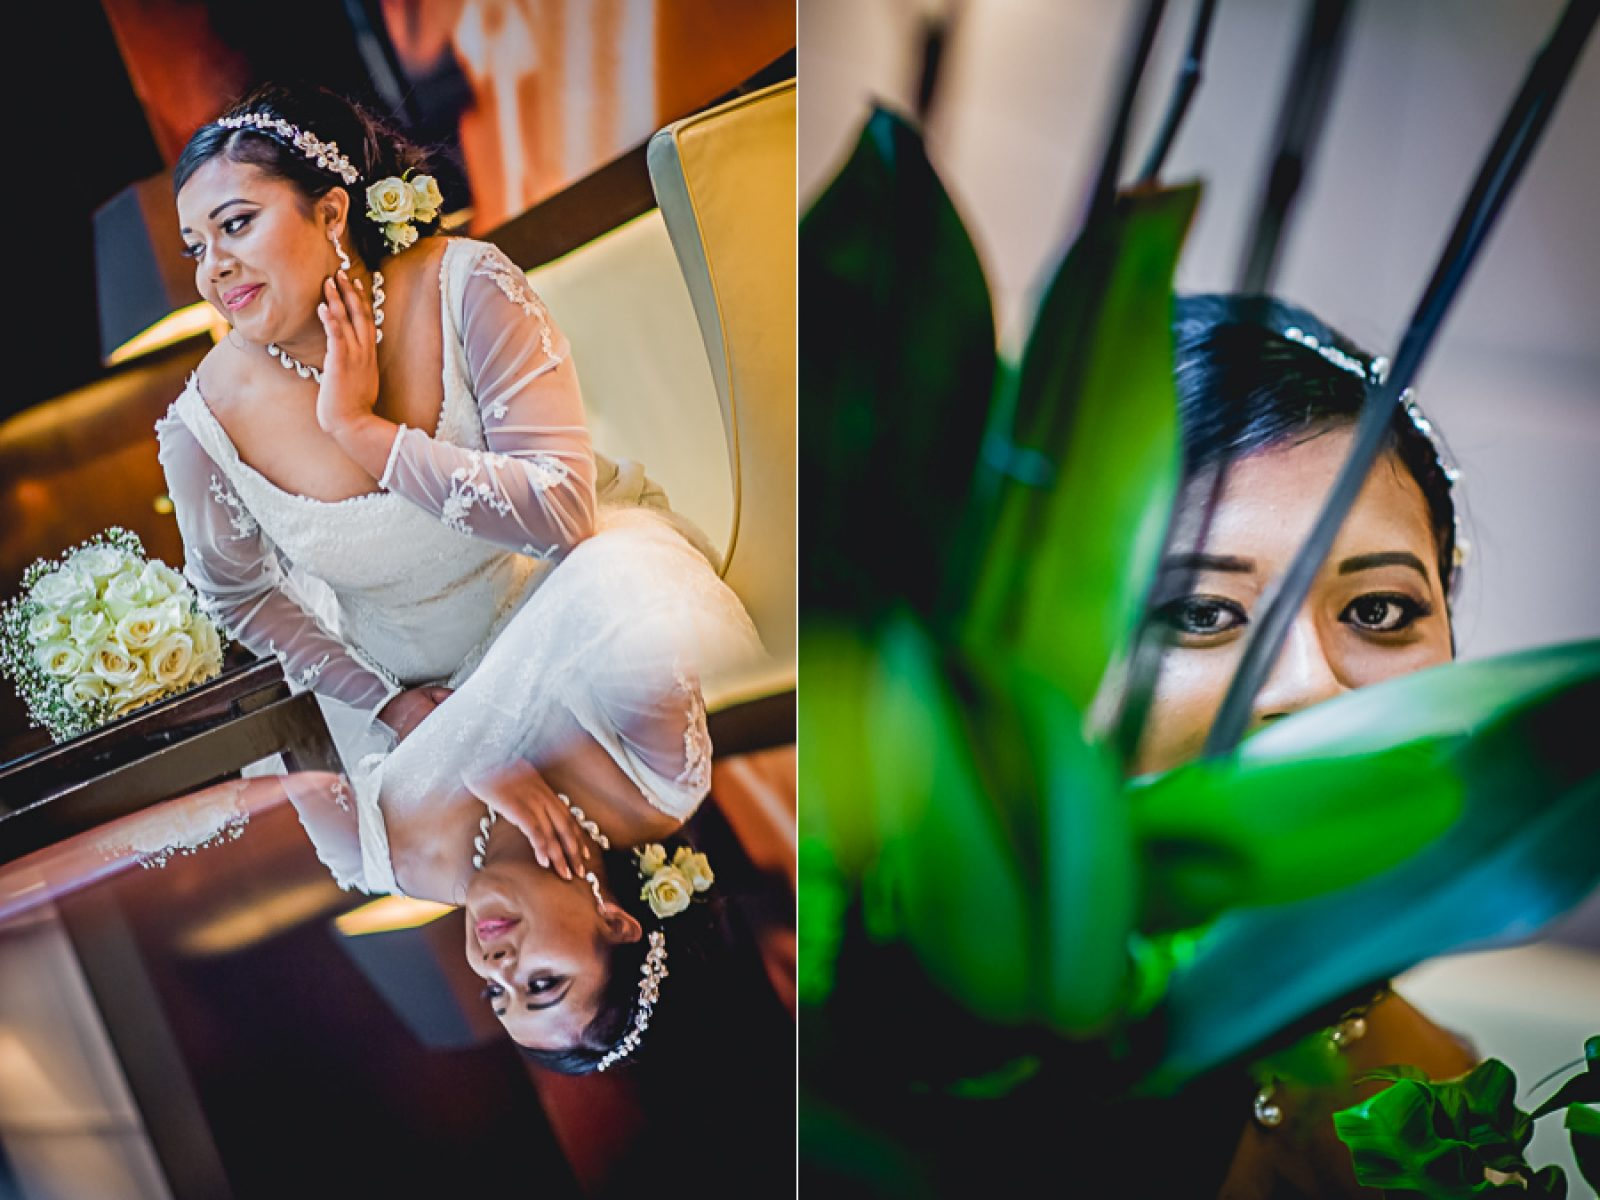 181 1600x1200 - Darshani and Anthony - wedding photographer in London